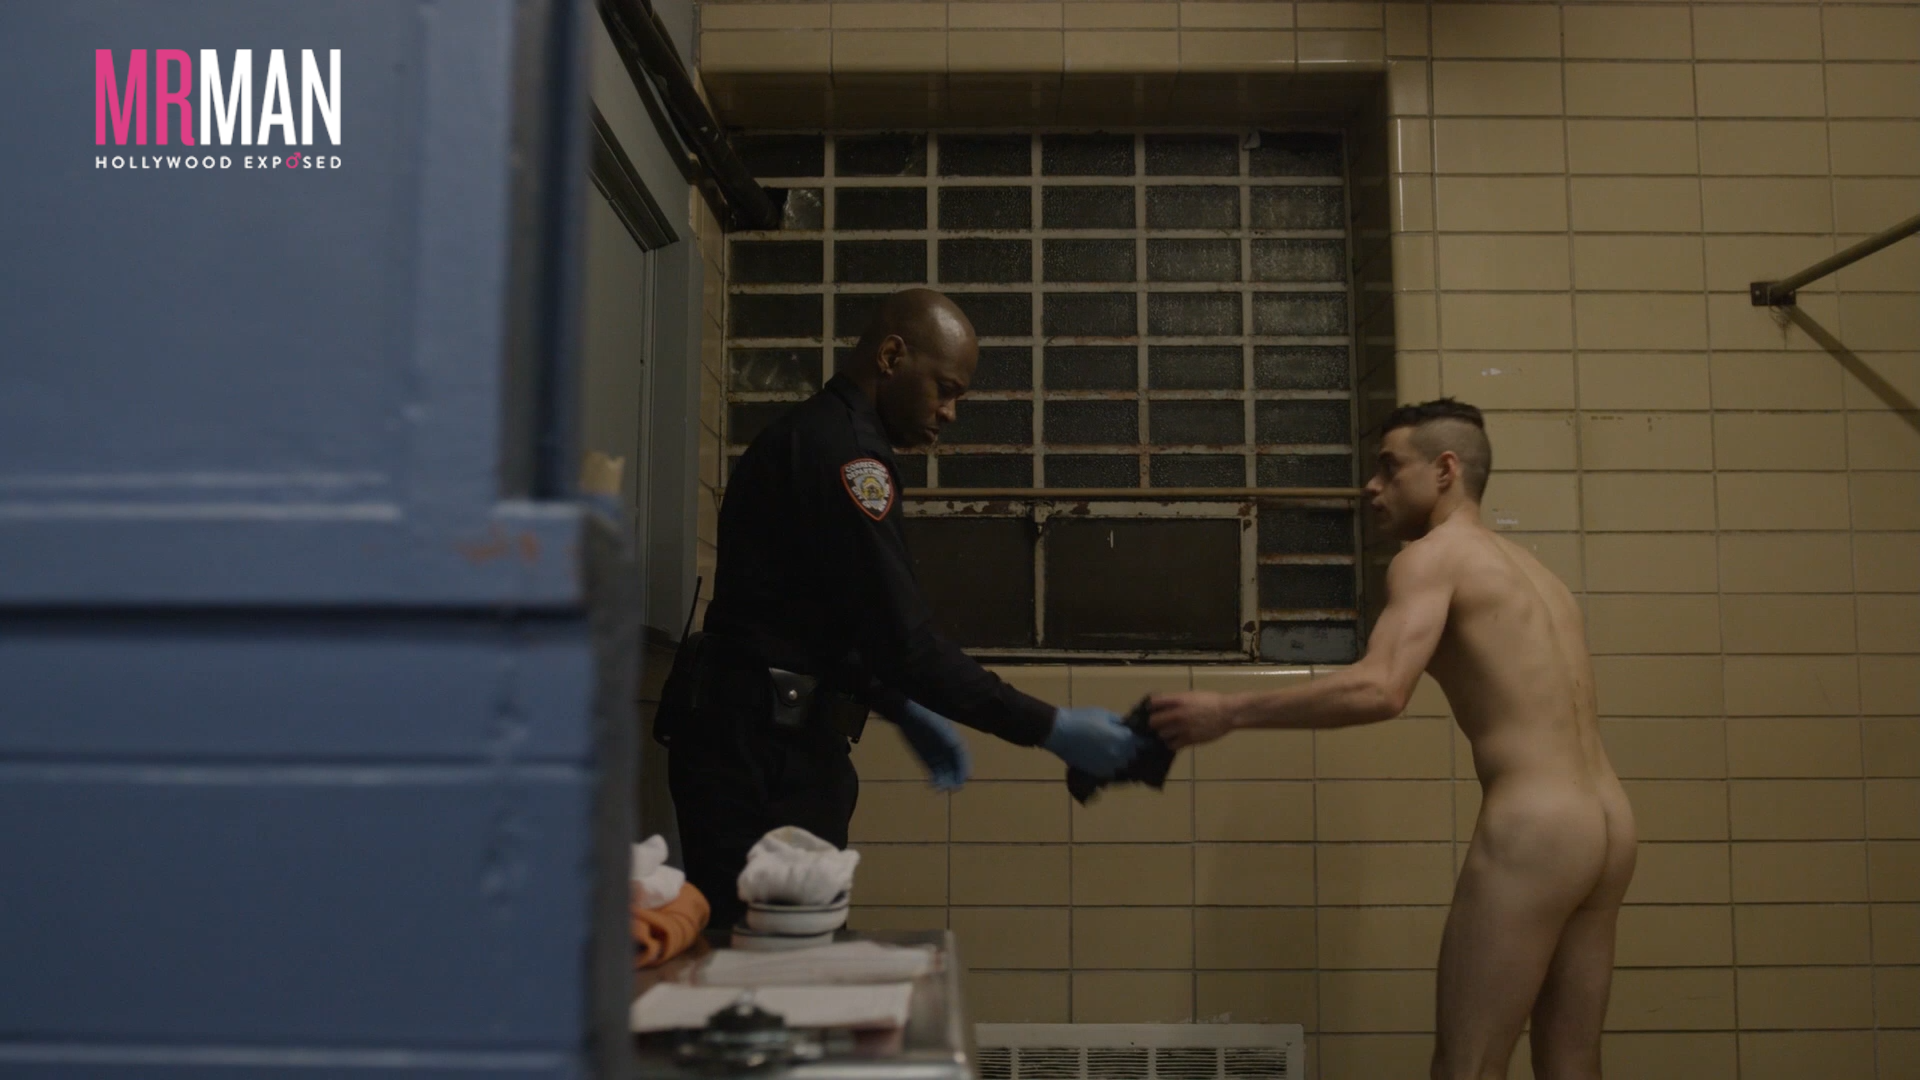 Beep Boop Butt: All The Mr. Robot Season 2 Nudity